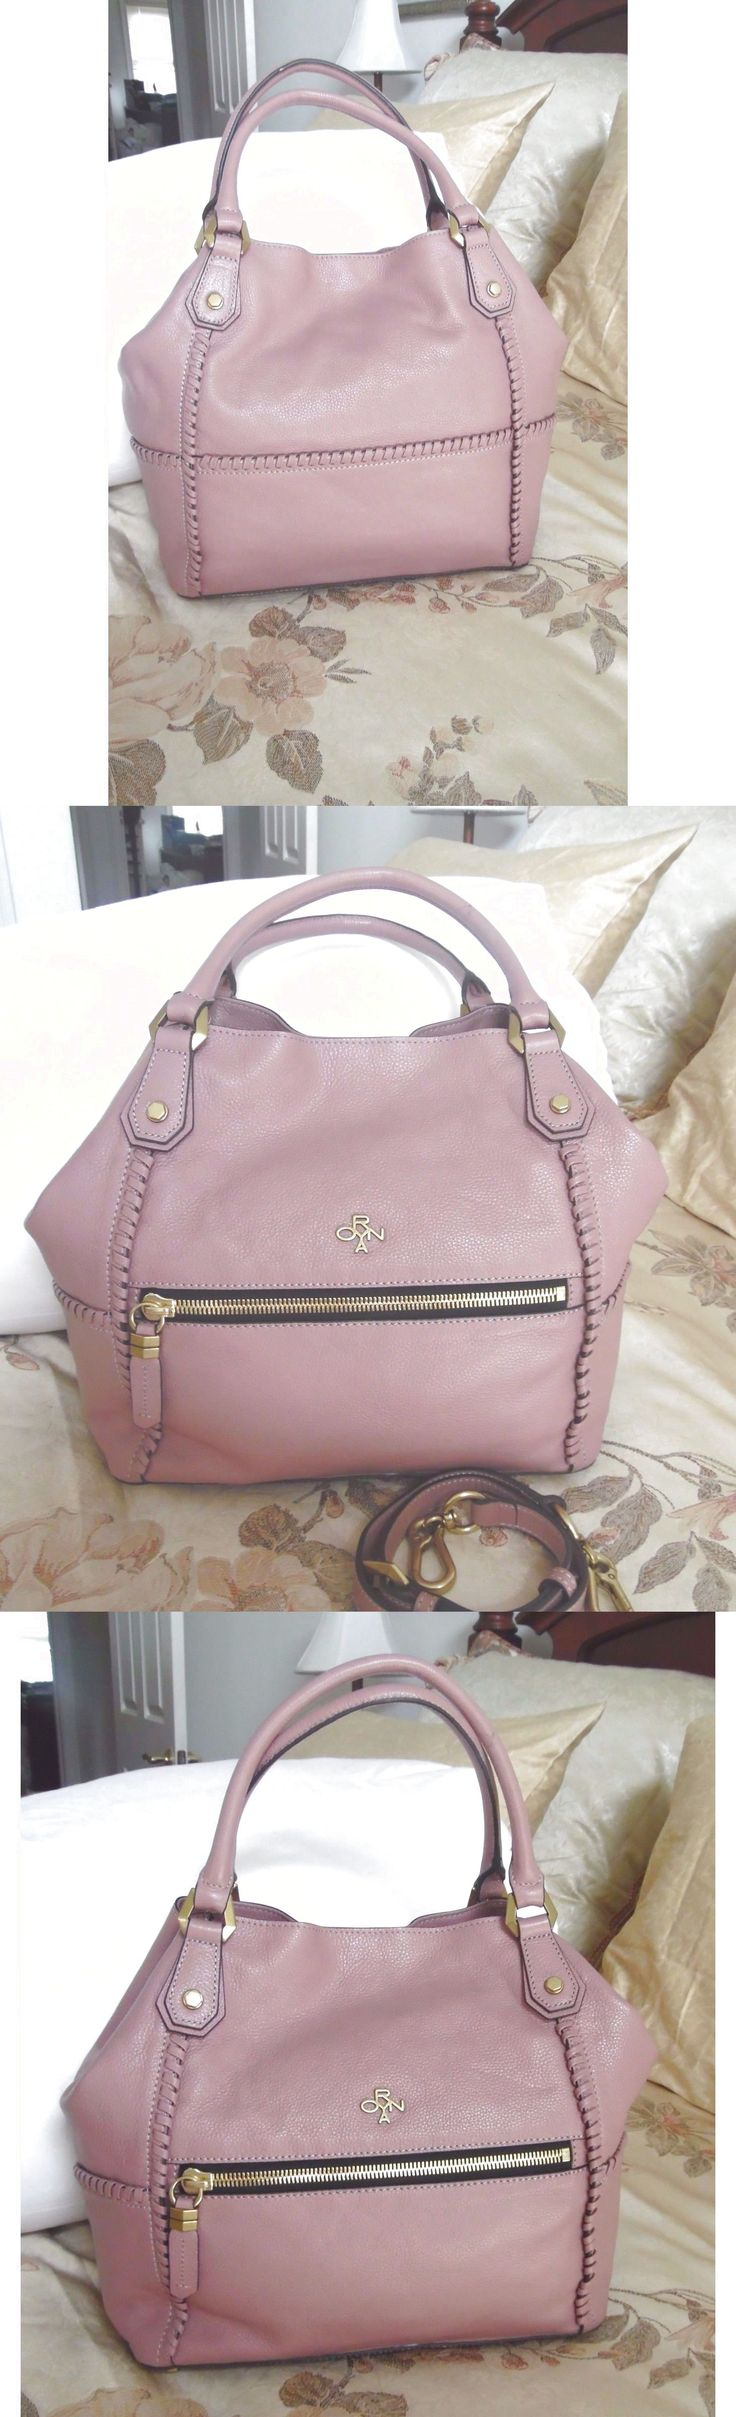 "orYANY Pebble Leather Satchel - Drew  ""Mauve""  NWT $122.9"